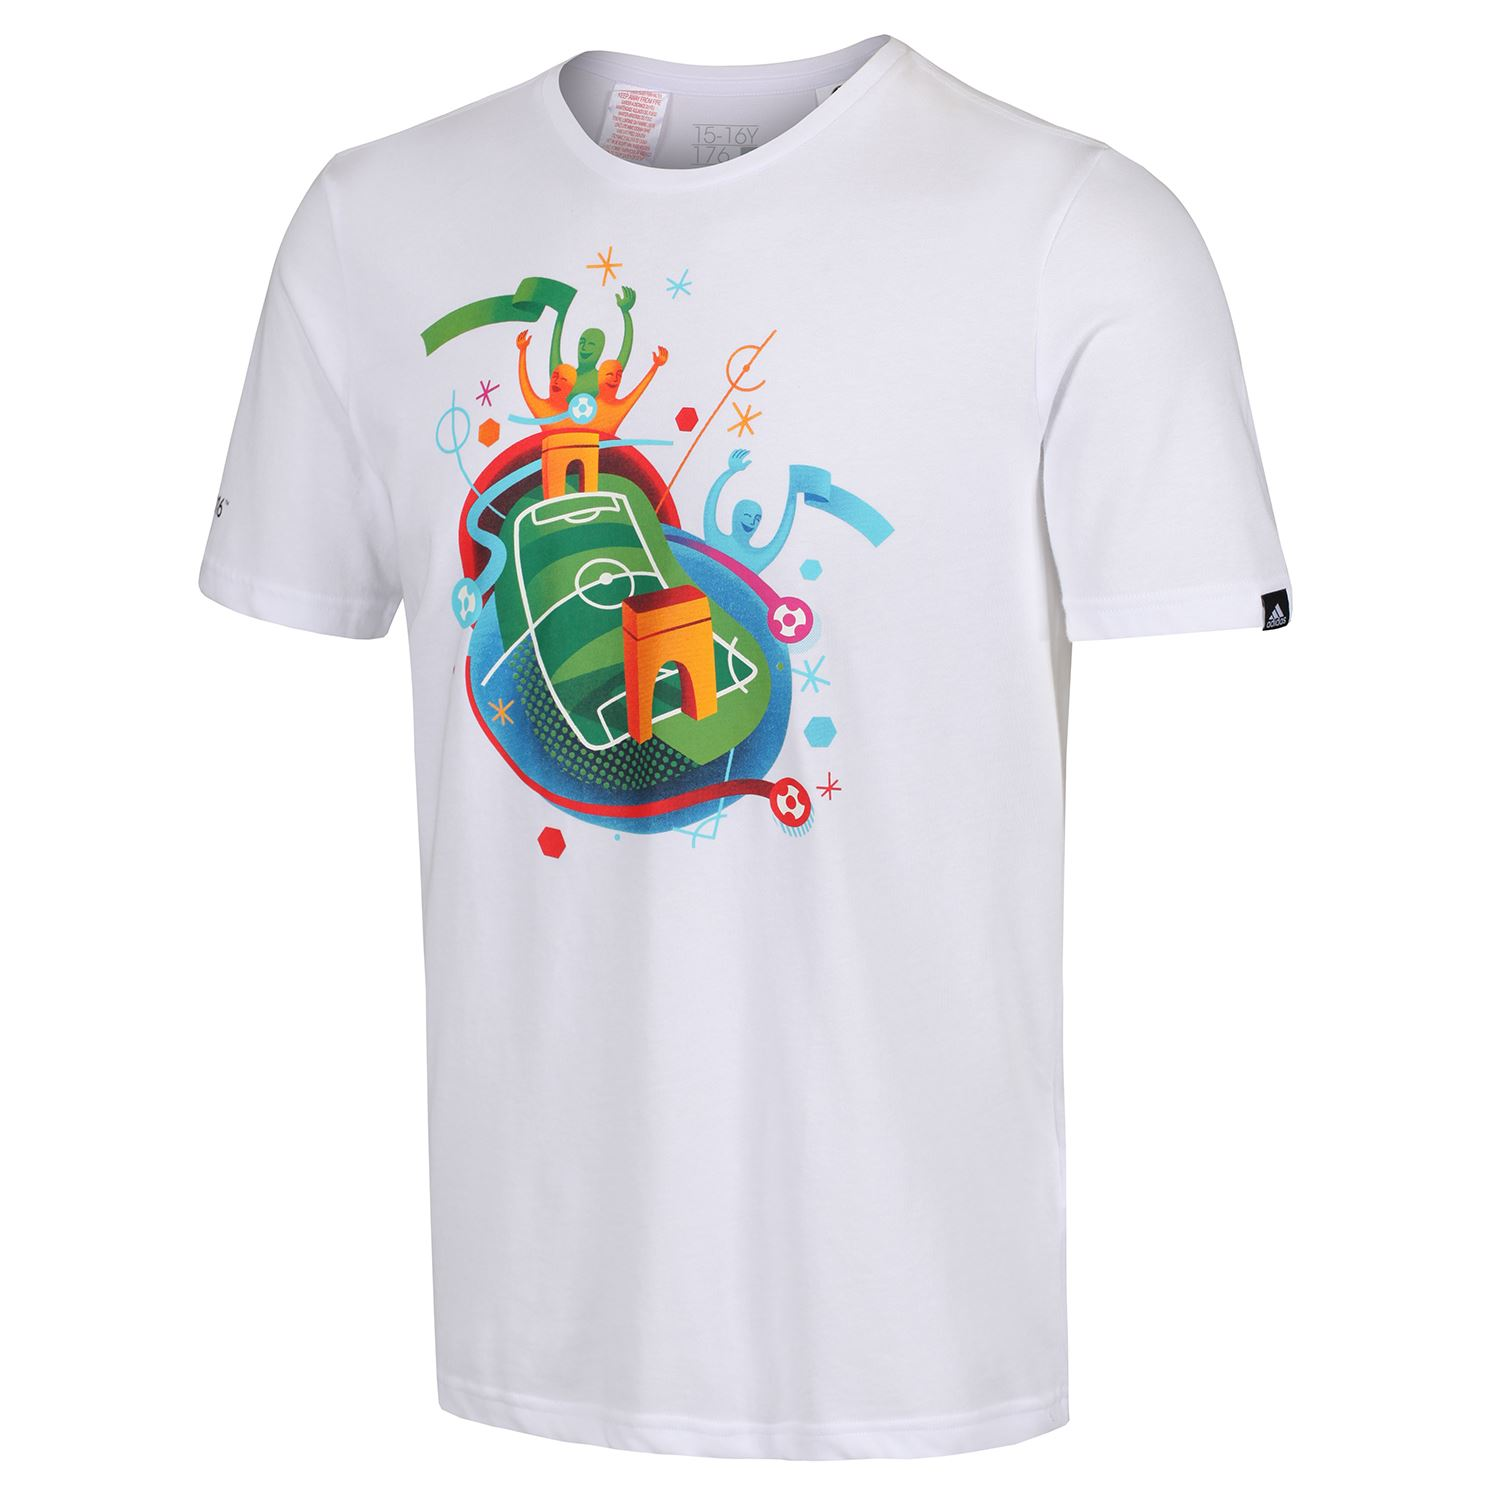 miniature 14 - Adidas-Enfants-Sports-T-Shirt-Garcons-Filles-9-10-To-15-16-ans-football-Crew